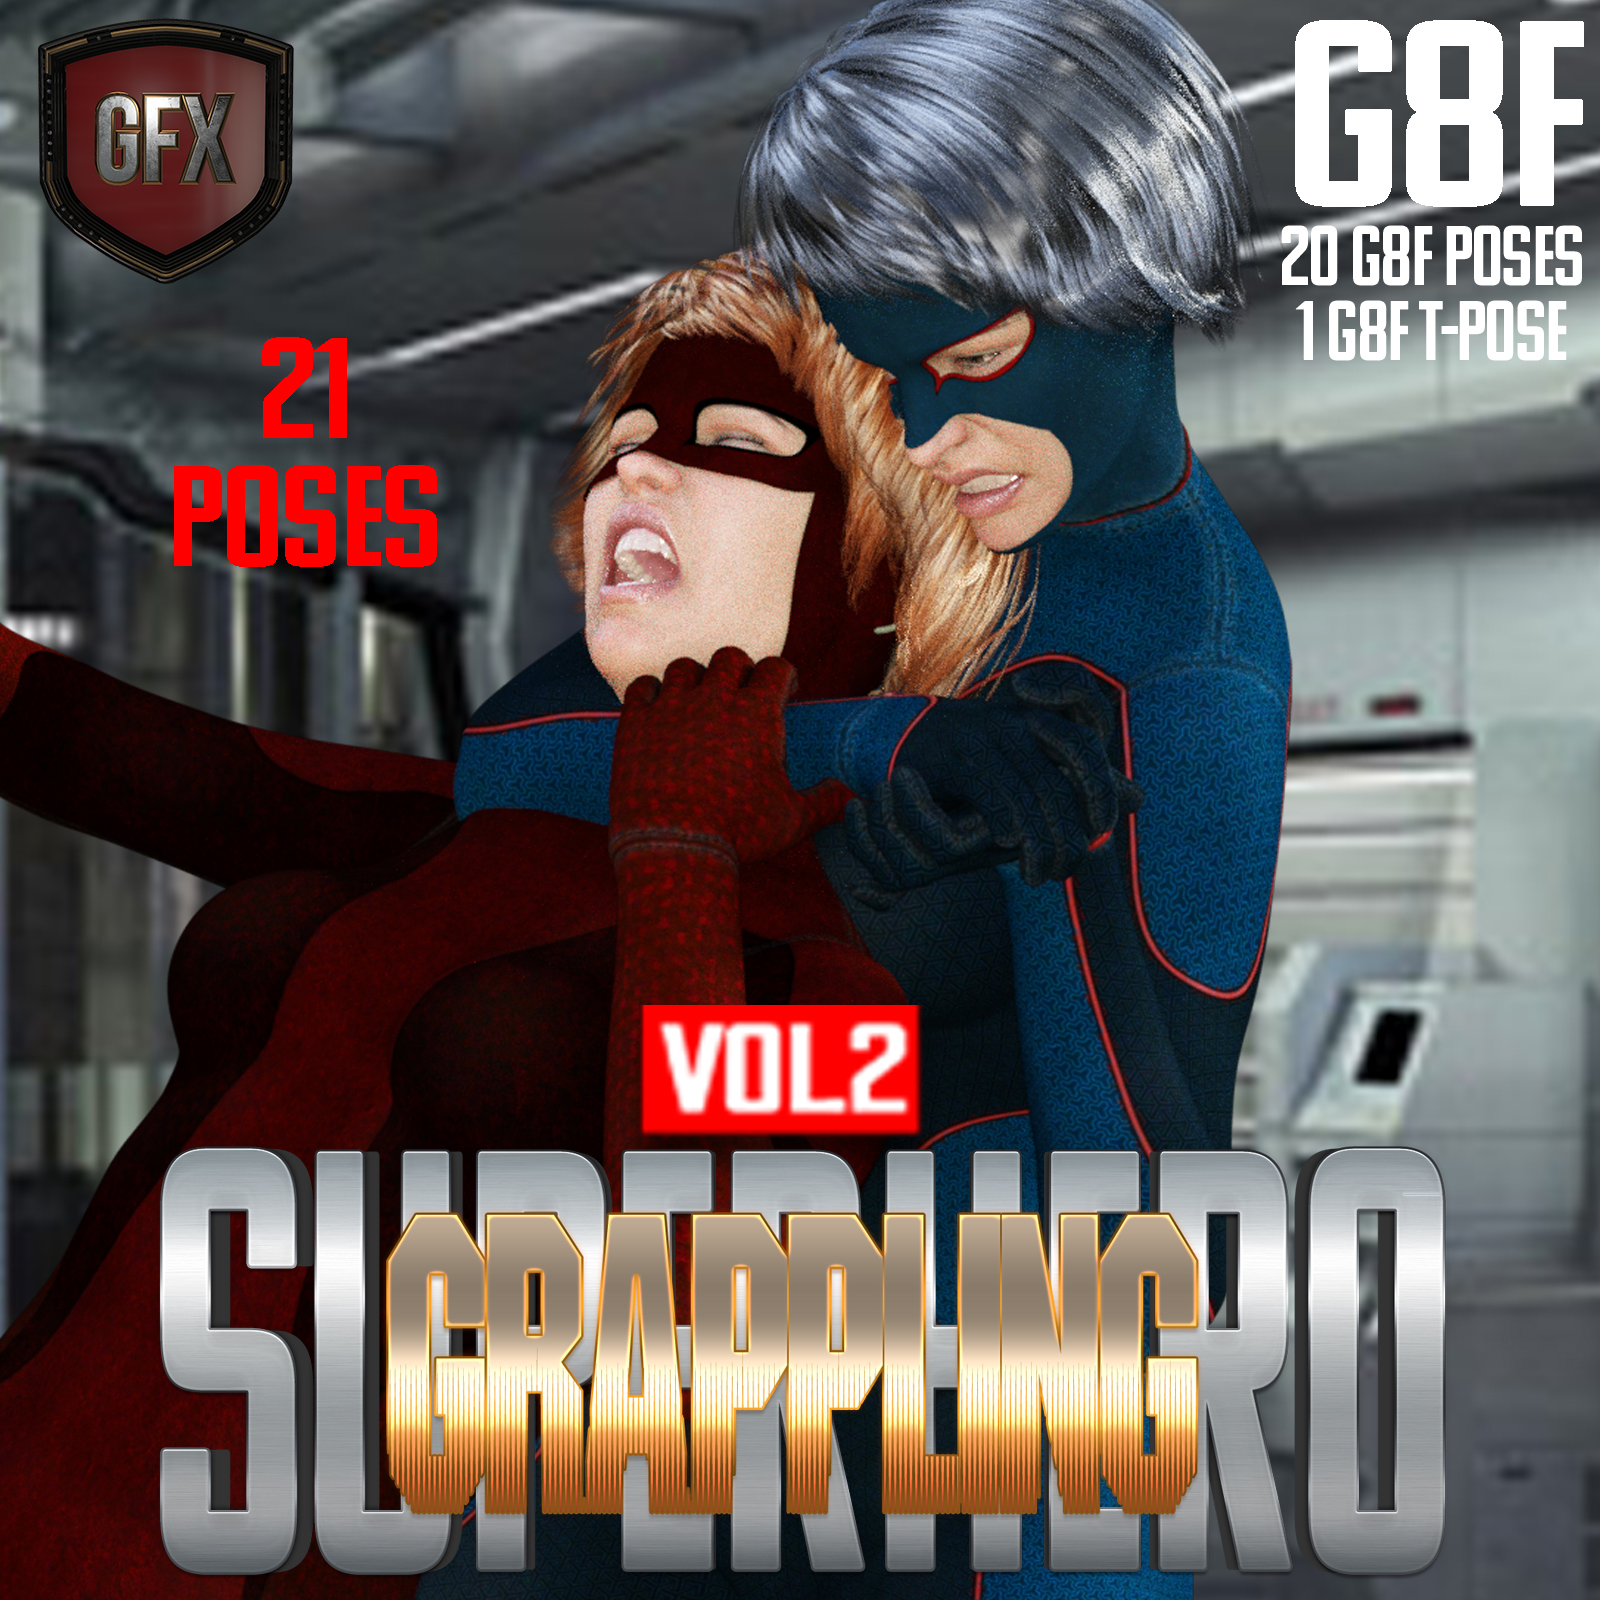 SuperHero Grappling for G8F Volume 2 by GriffinFX